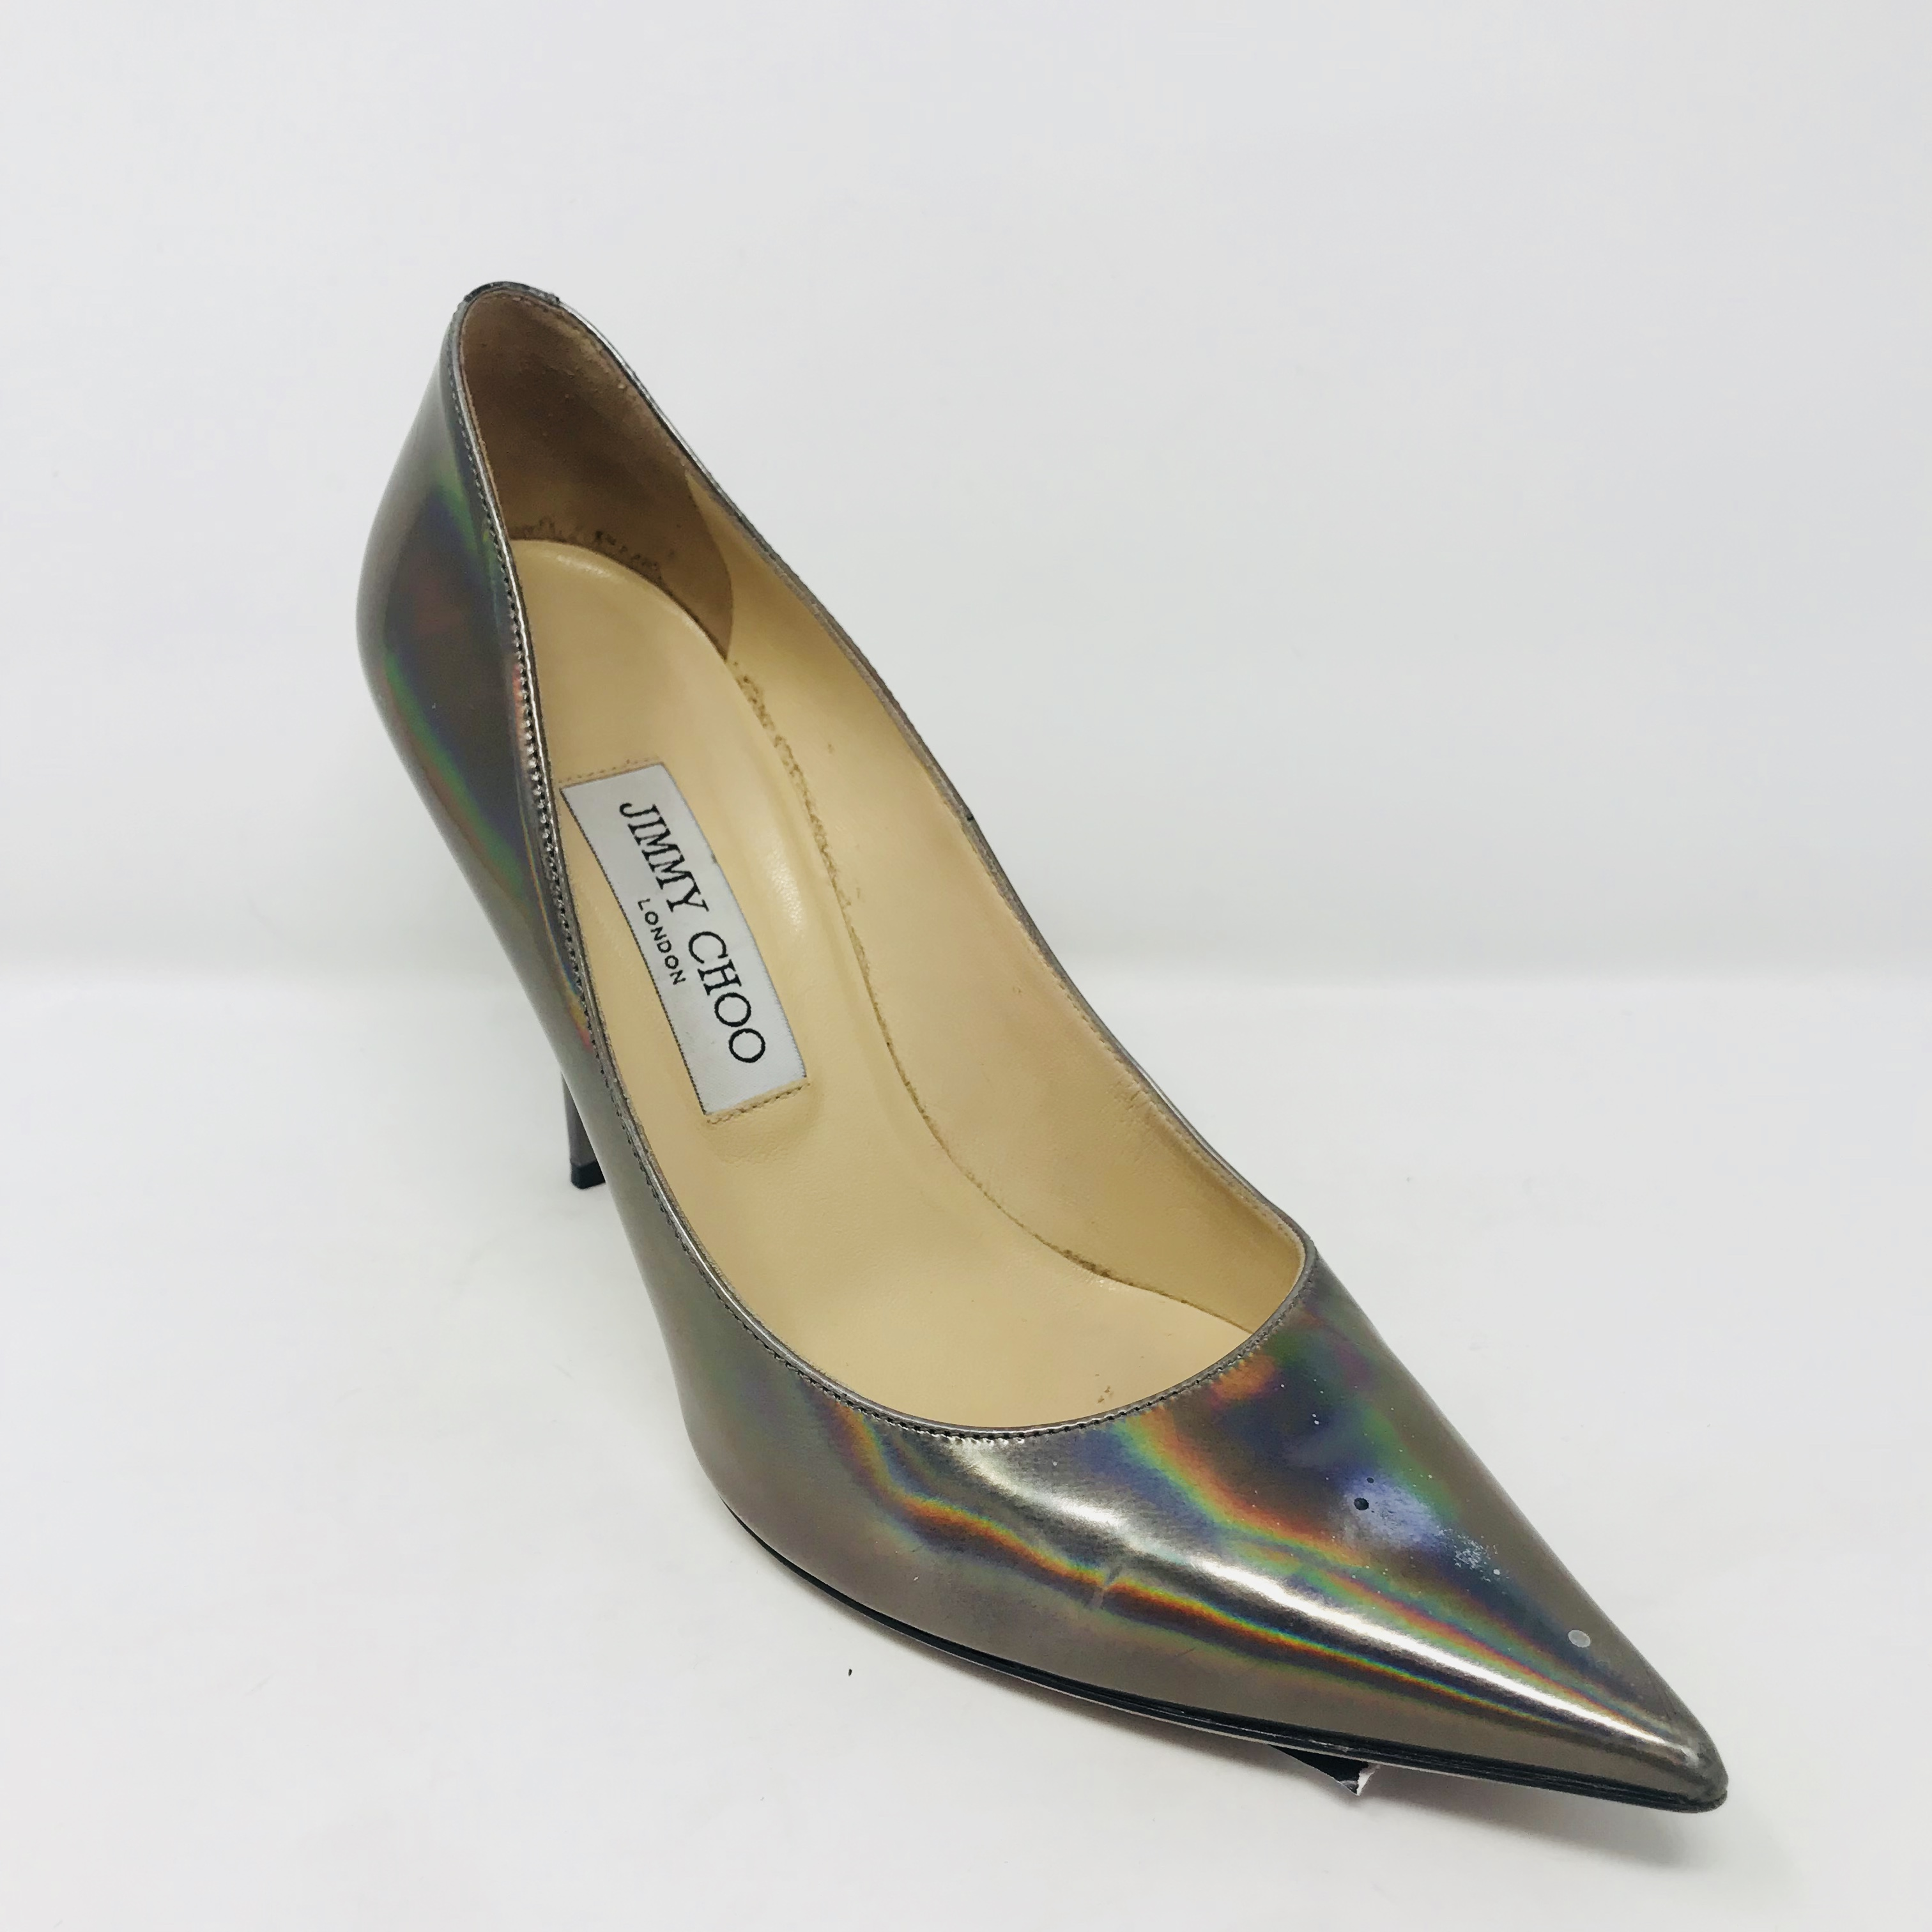 Jimmy Choo Shoes Price: $89.99